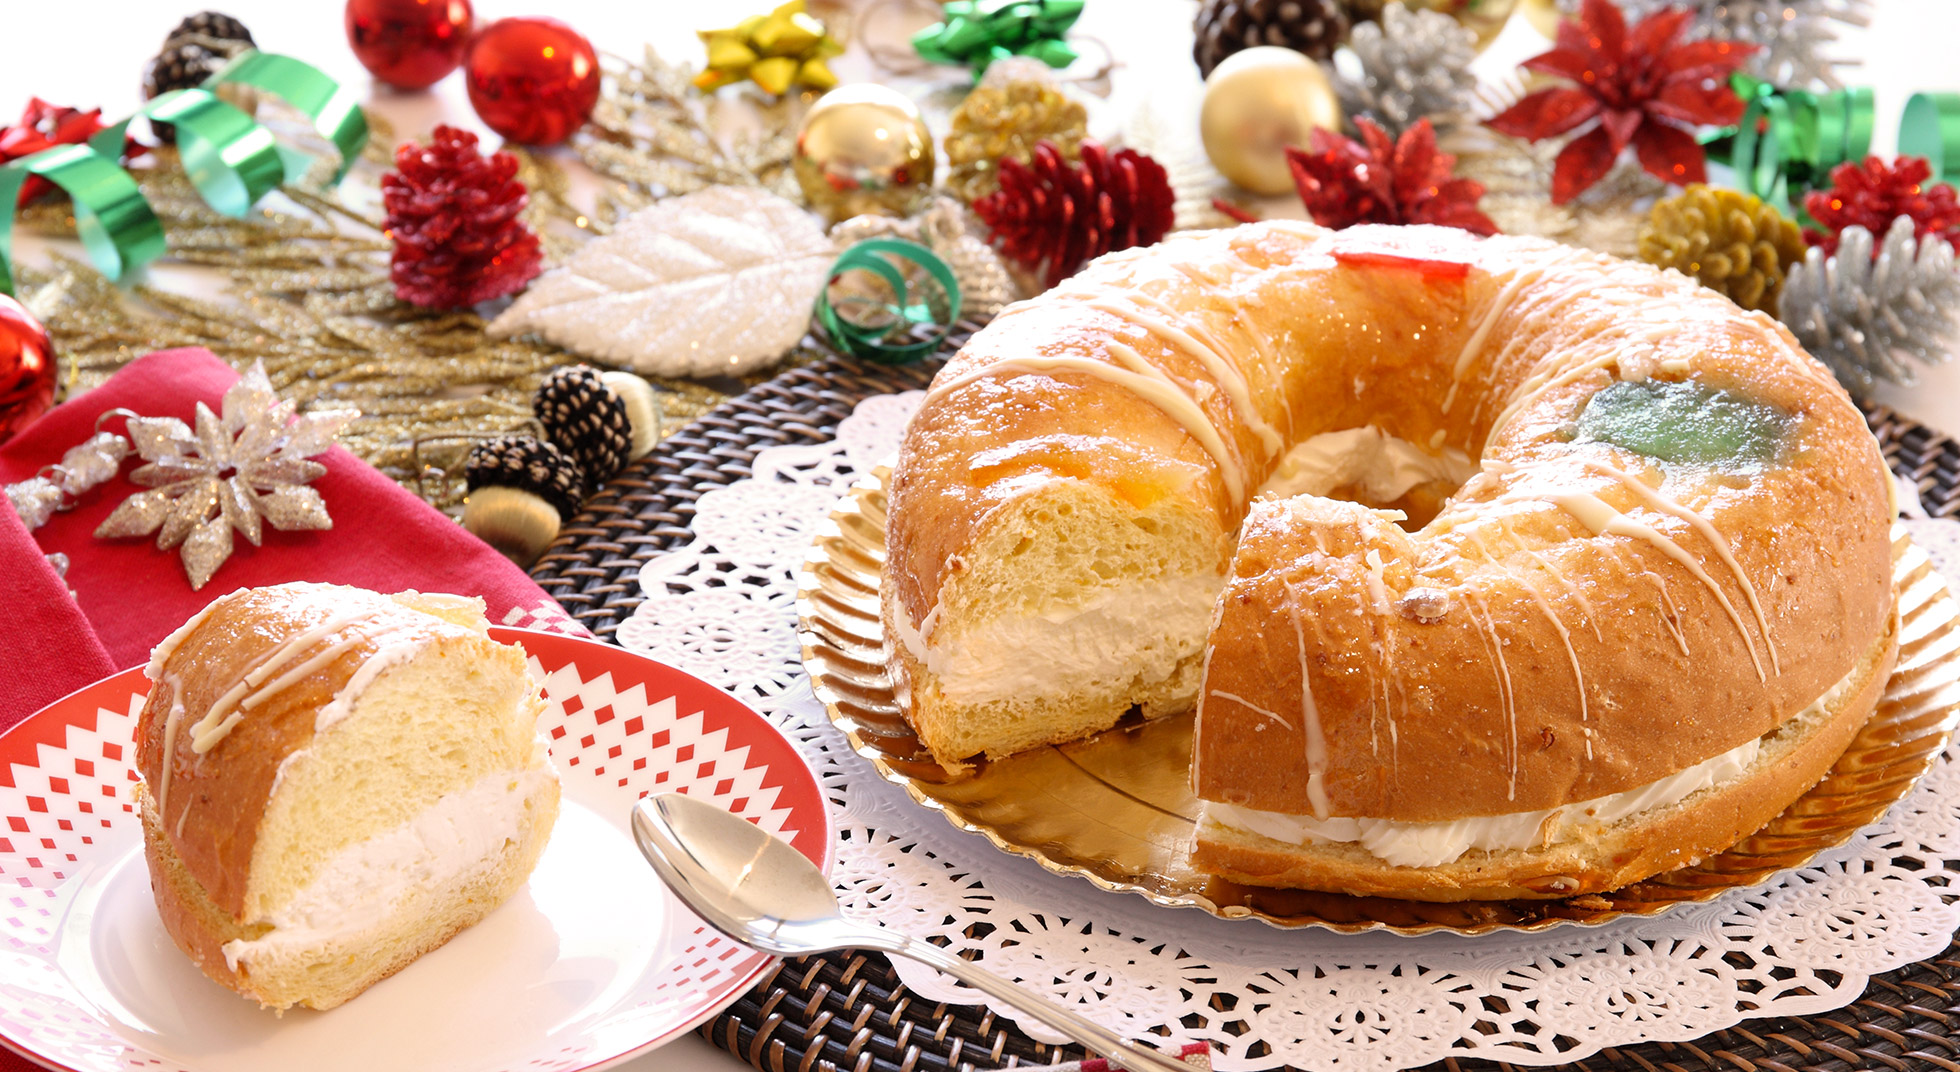 speciale ricette befana